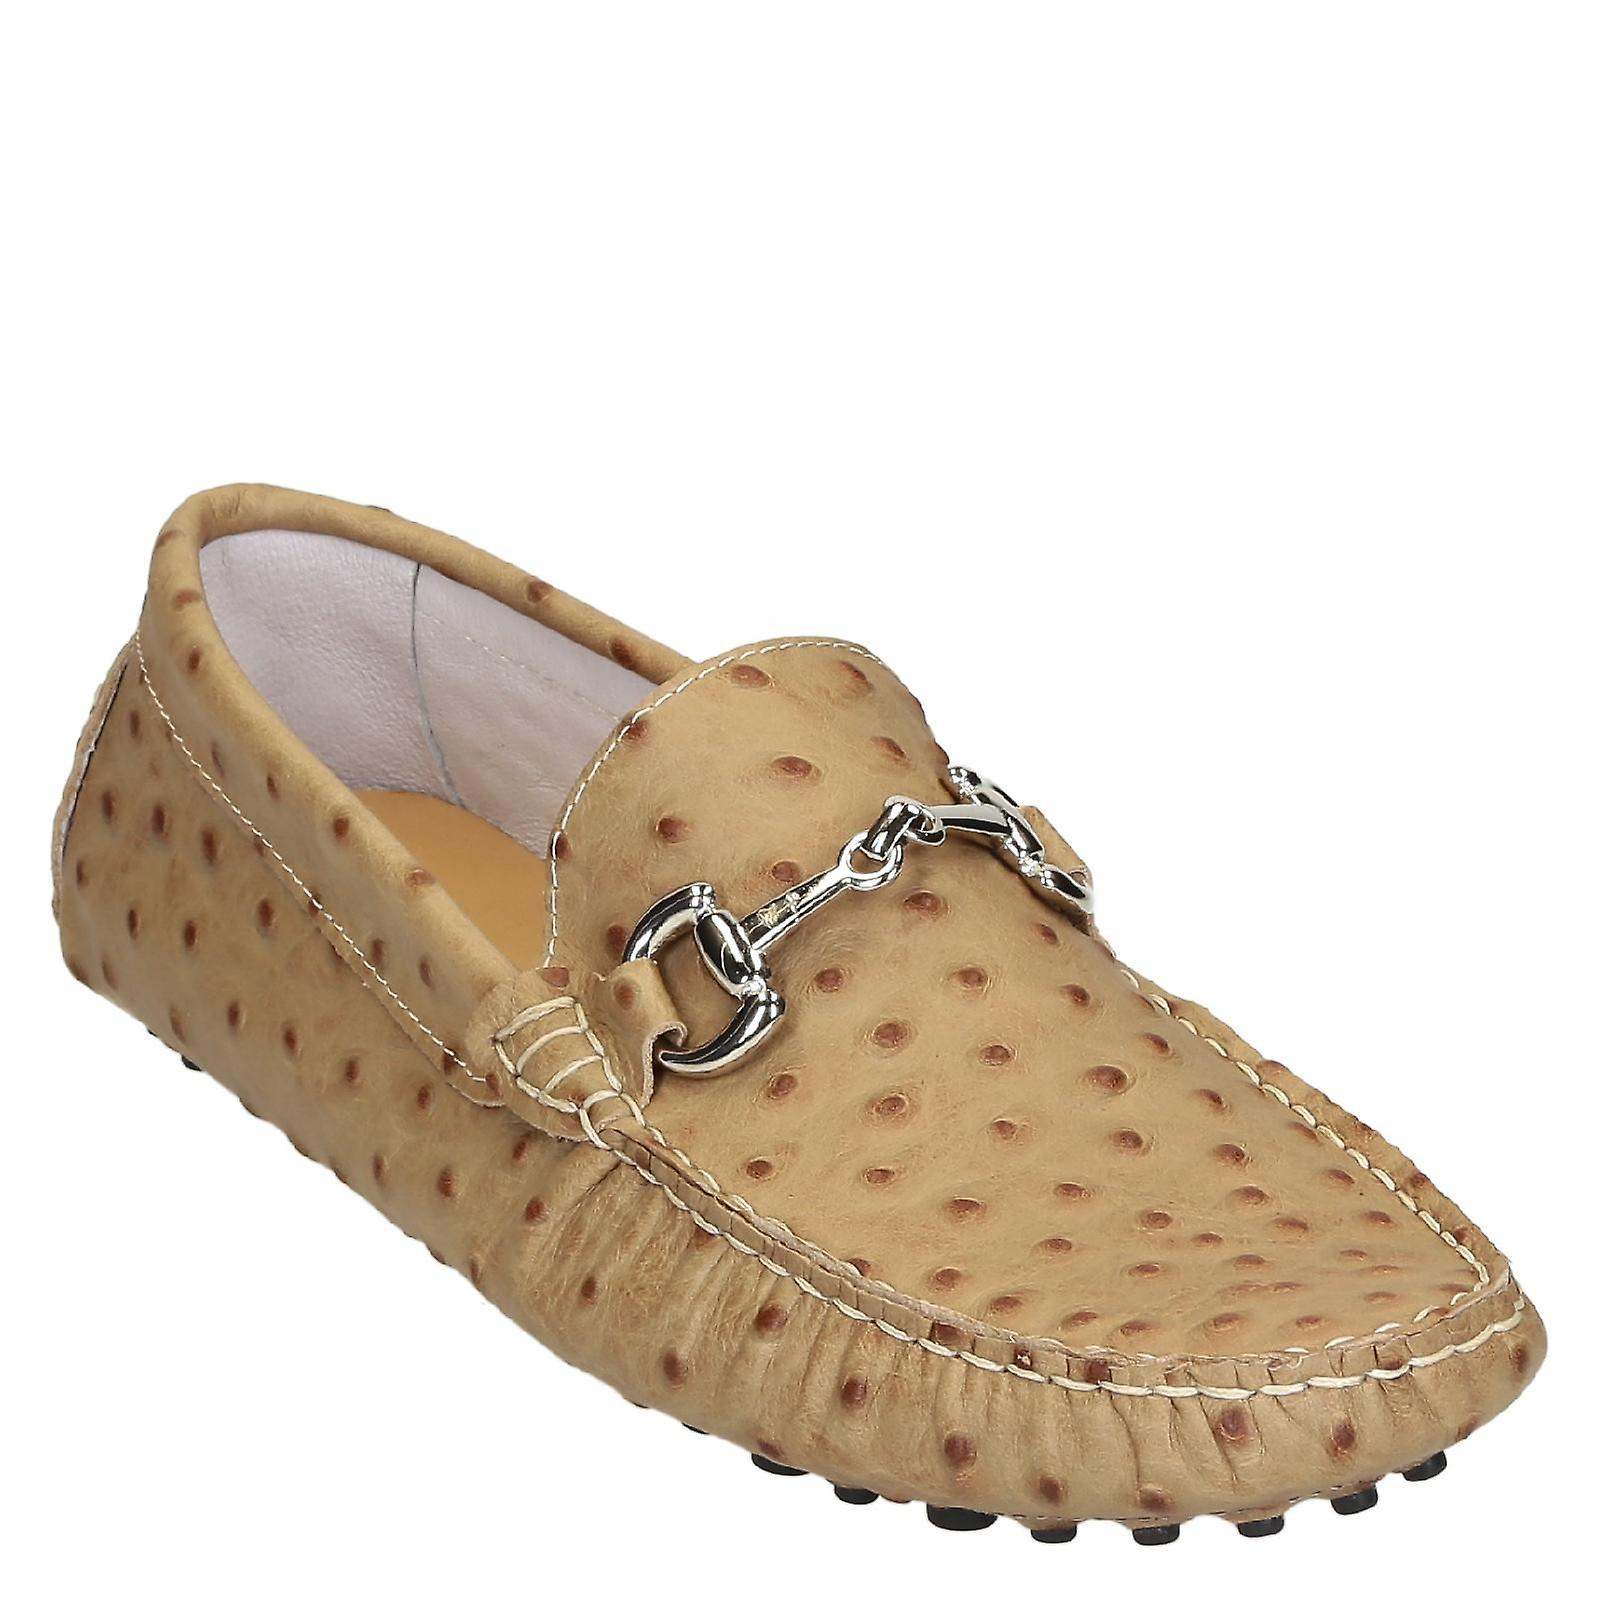 Beige ostrich textured moccasins leather driving moccasins textured for men 80fa70